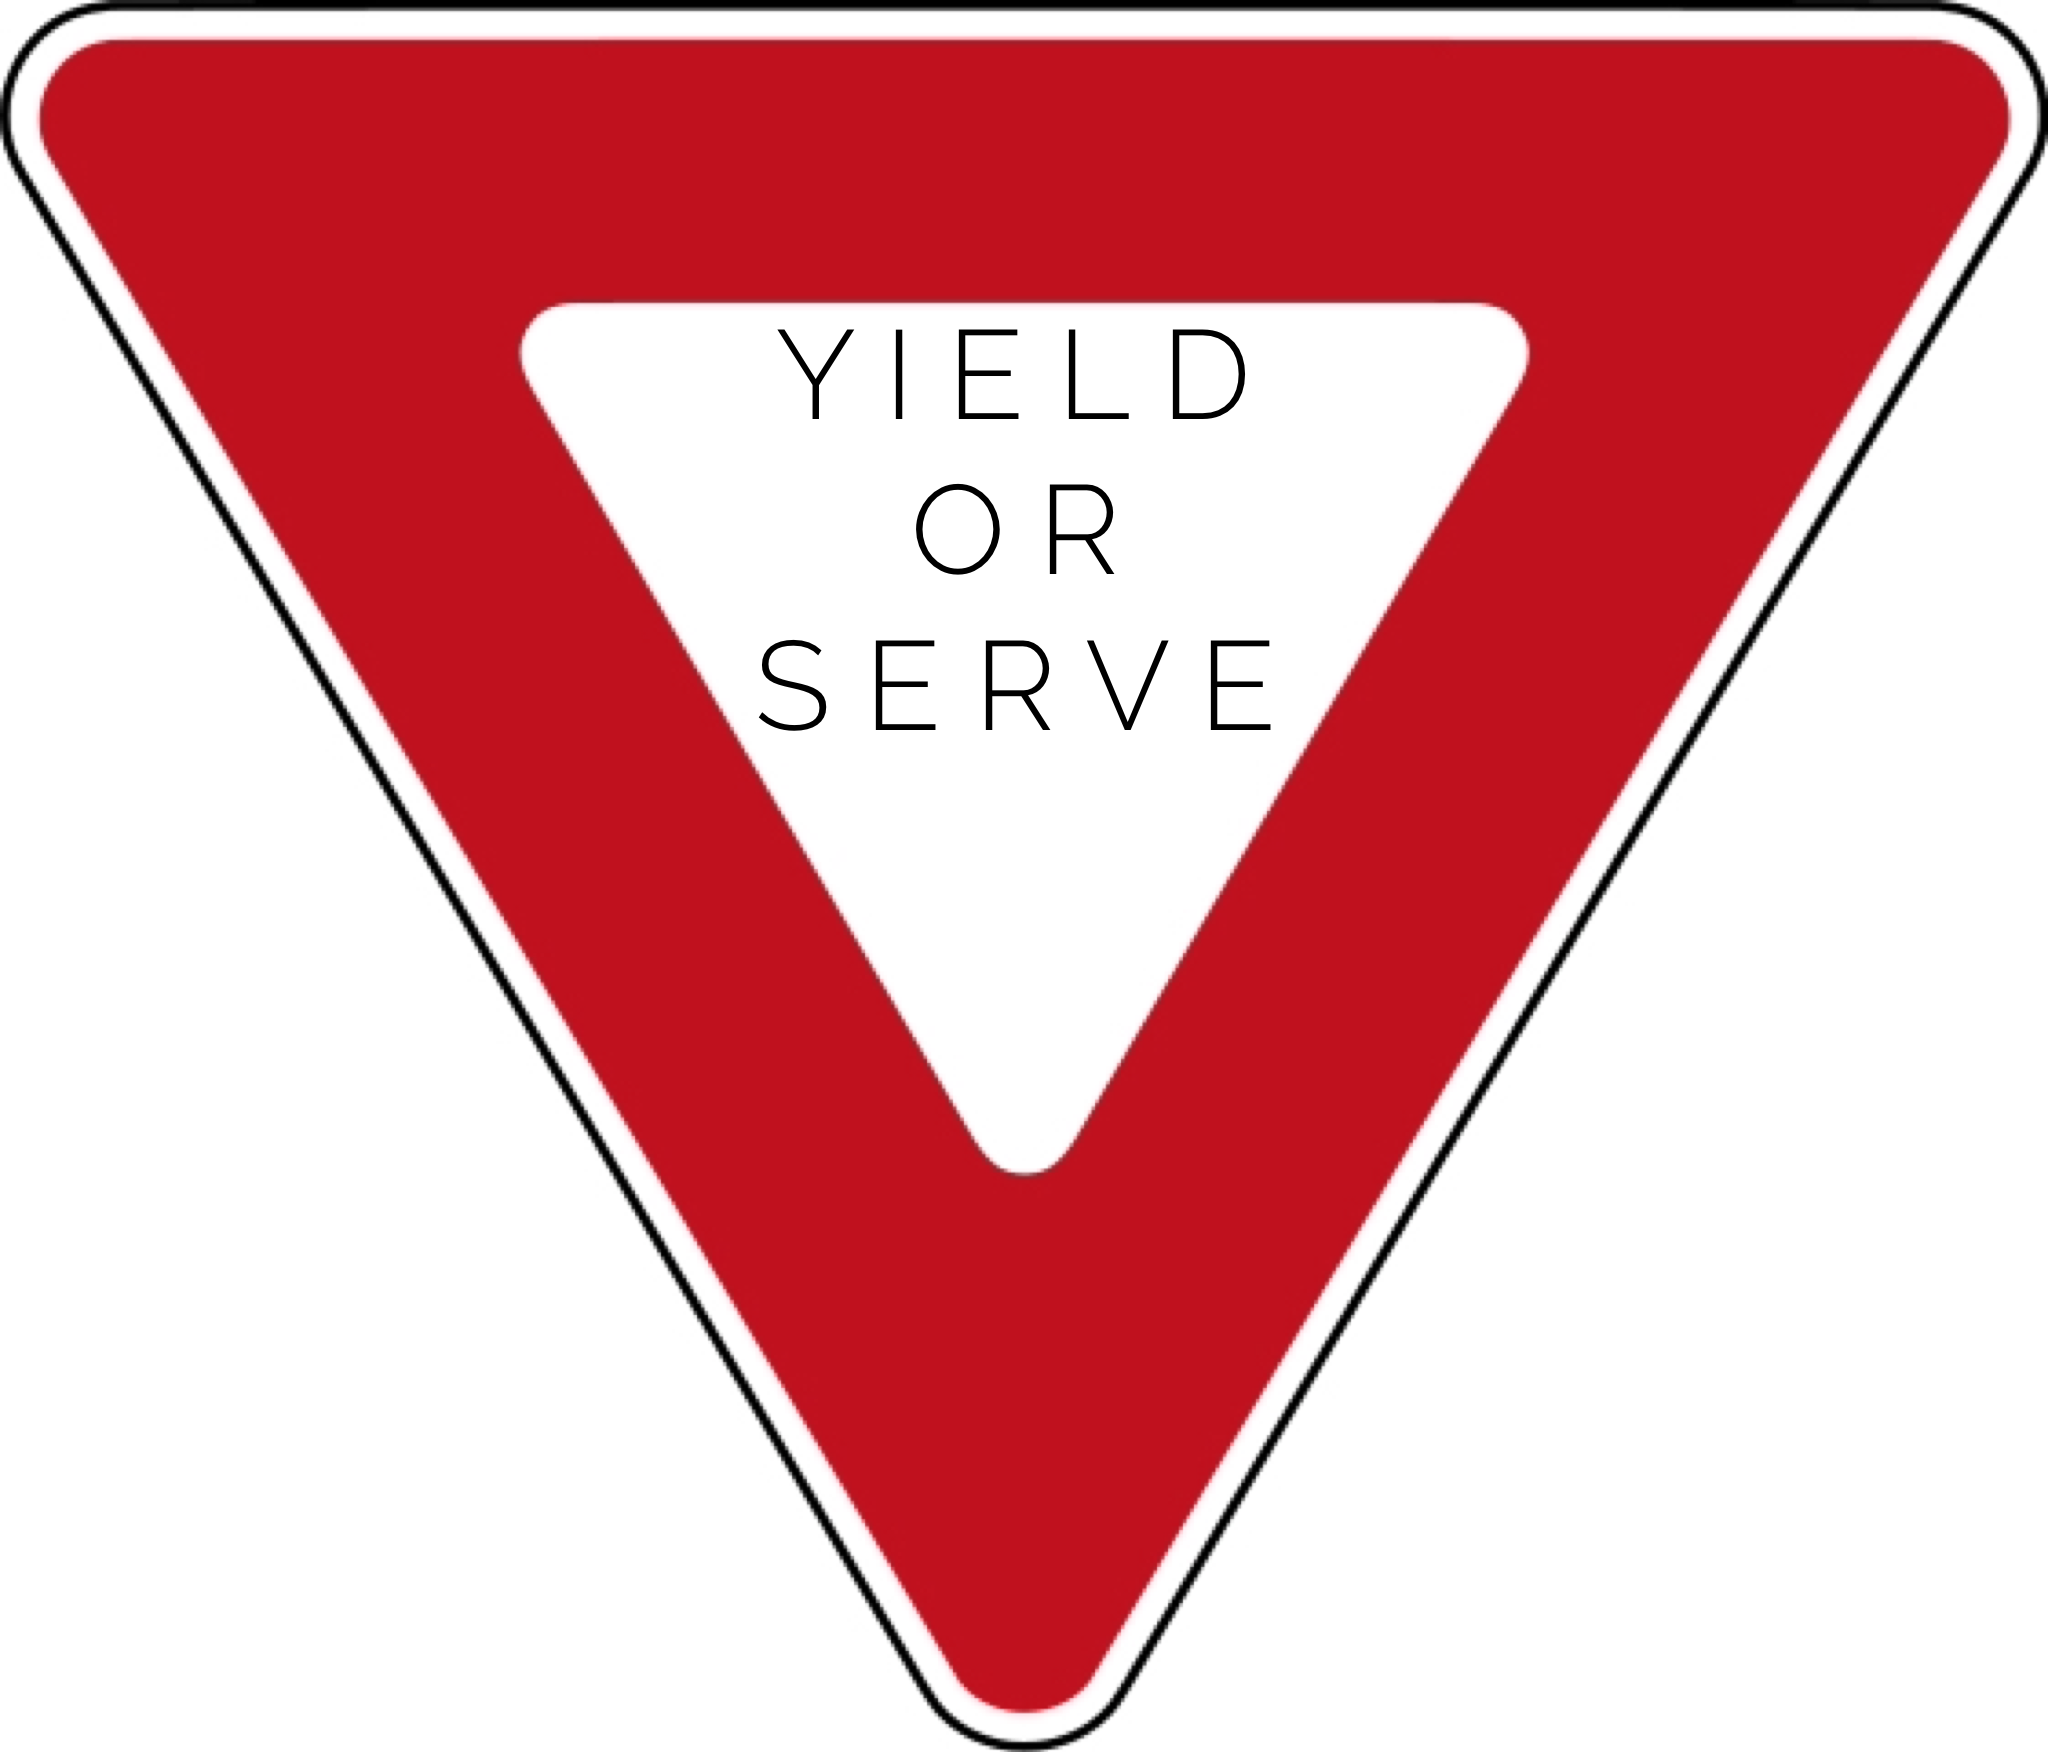 yield, serve, servant leadership, character, god, jesus